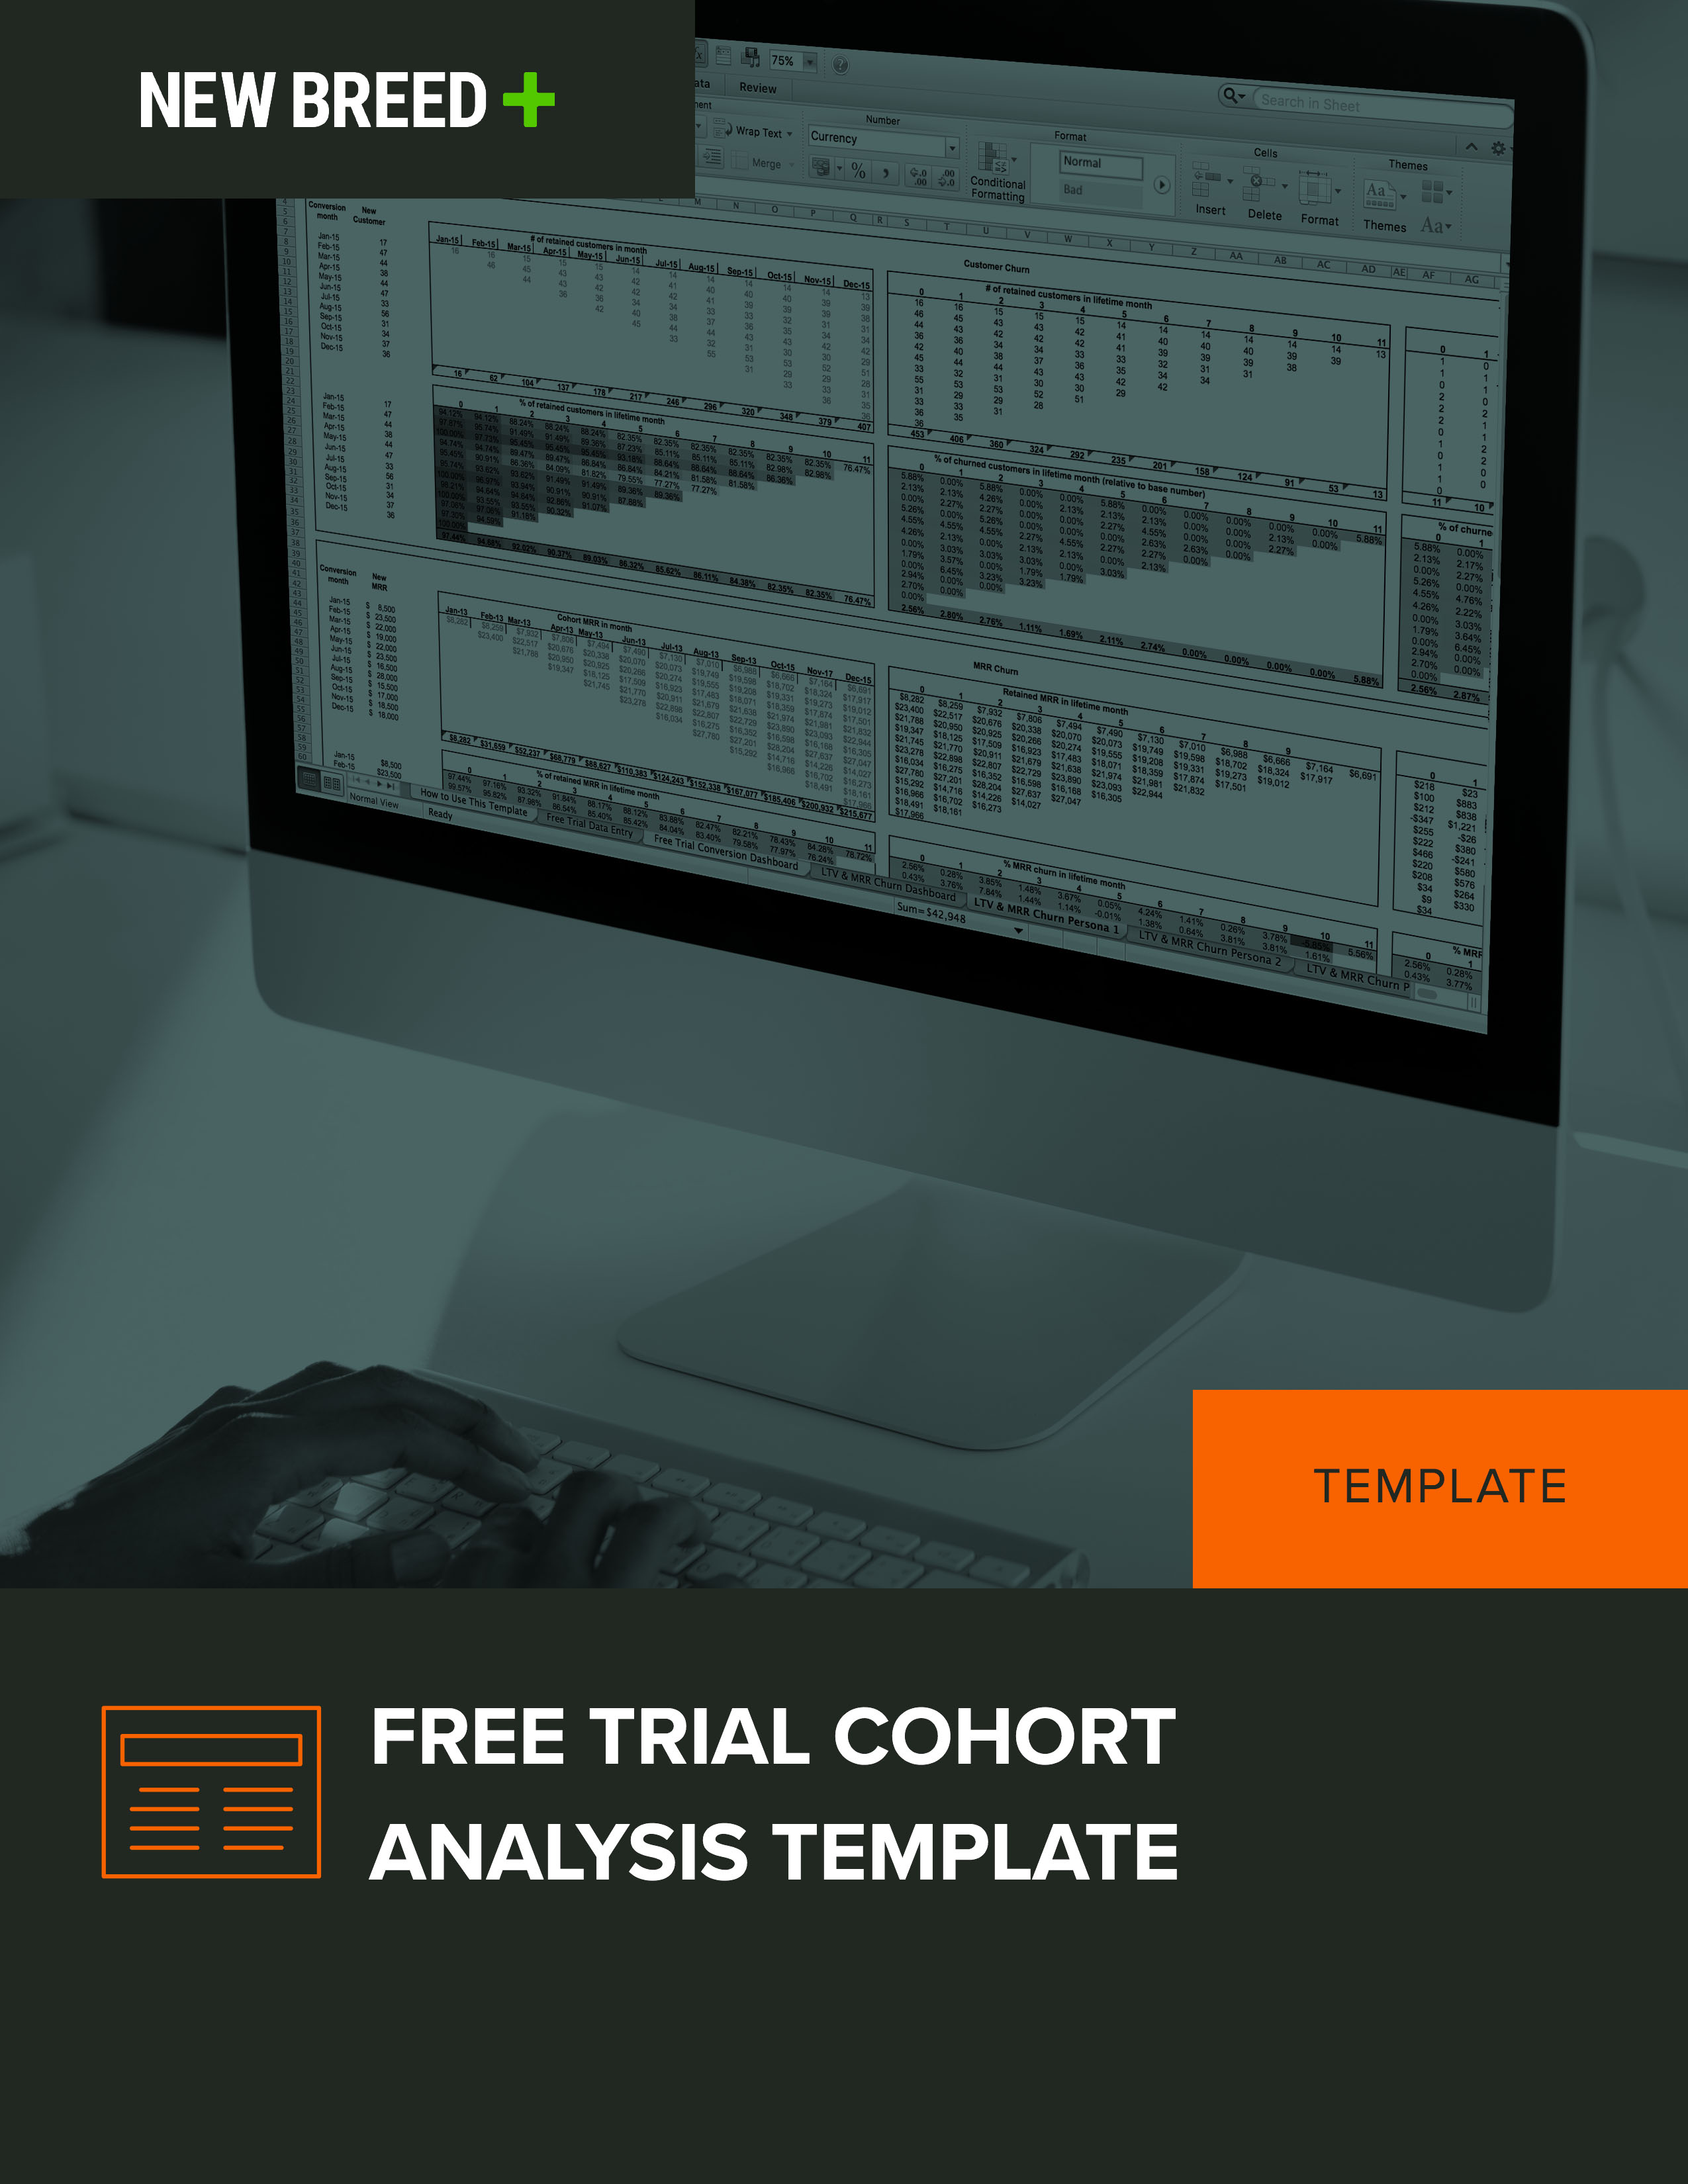 free trial cohort analysis template